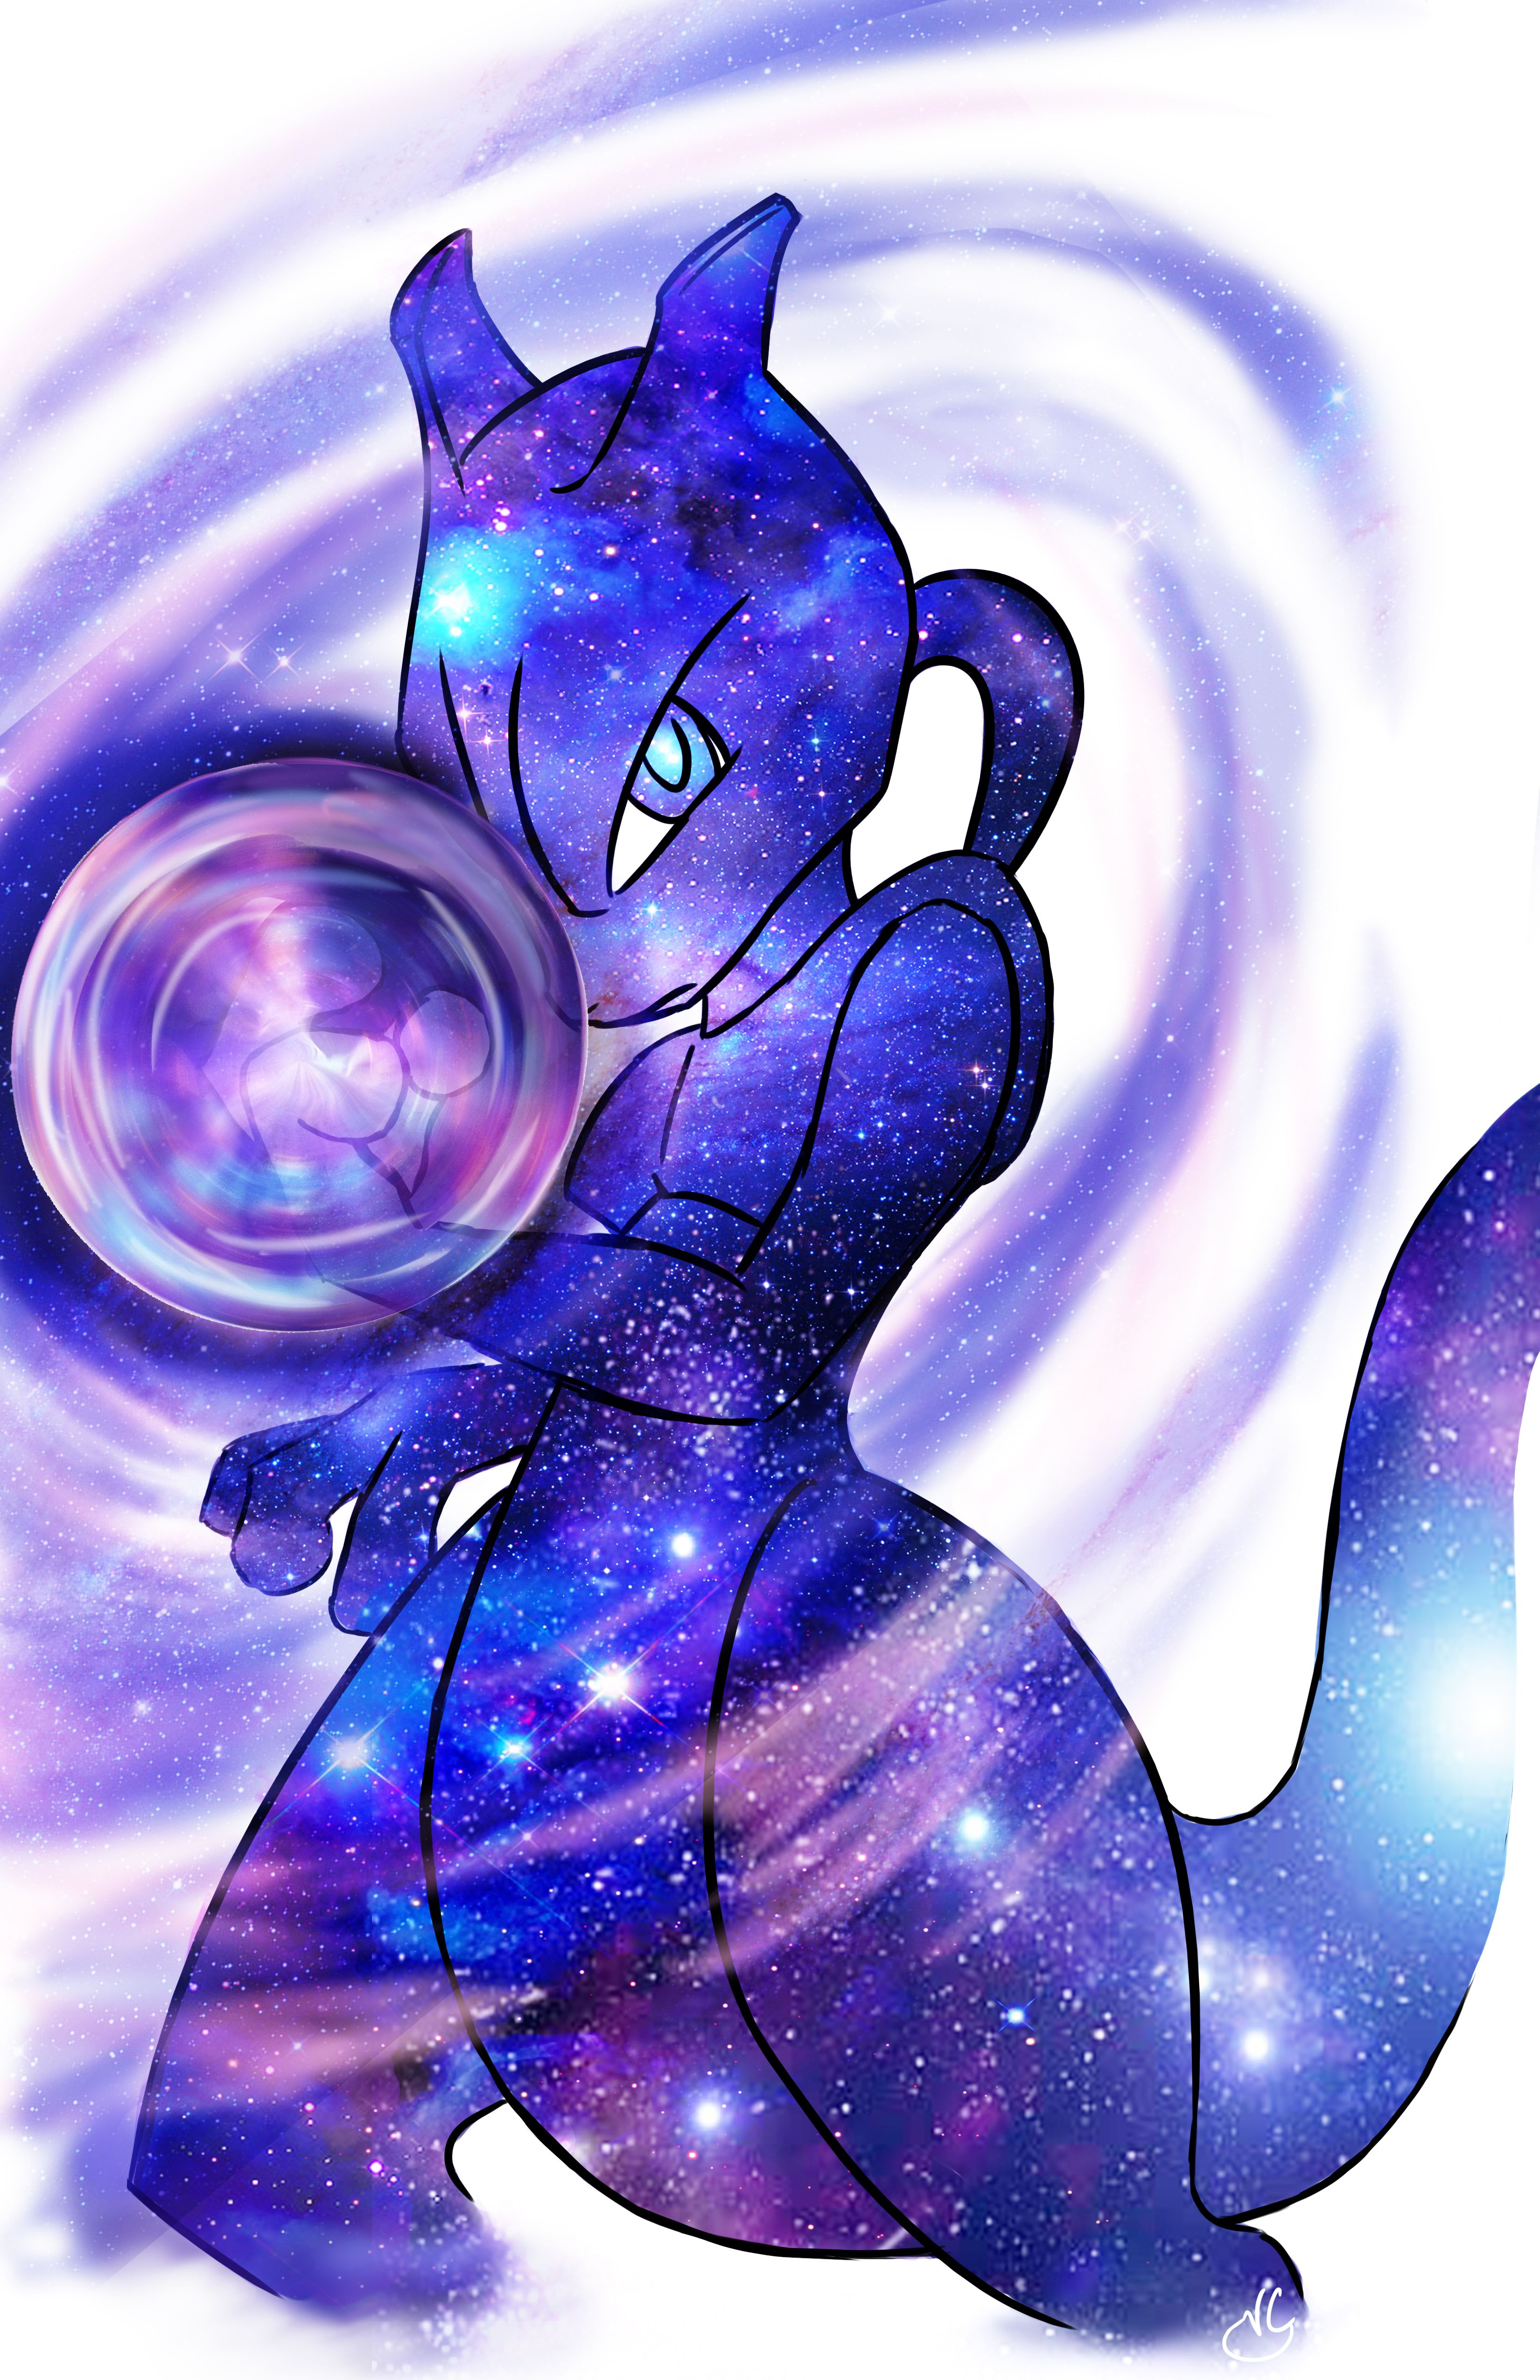 Mewtwo The Strongest In The Galaxy Mew And Mewtwo Pokemon Mew Pokemon Drawings